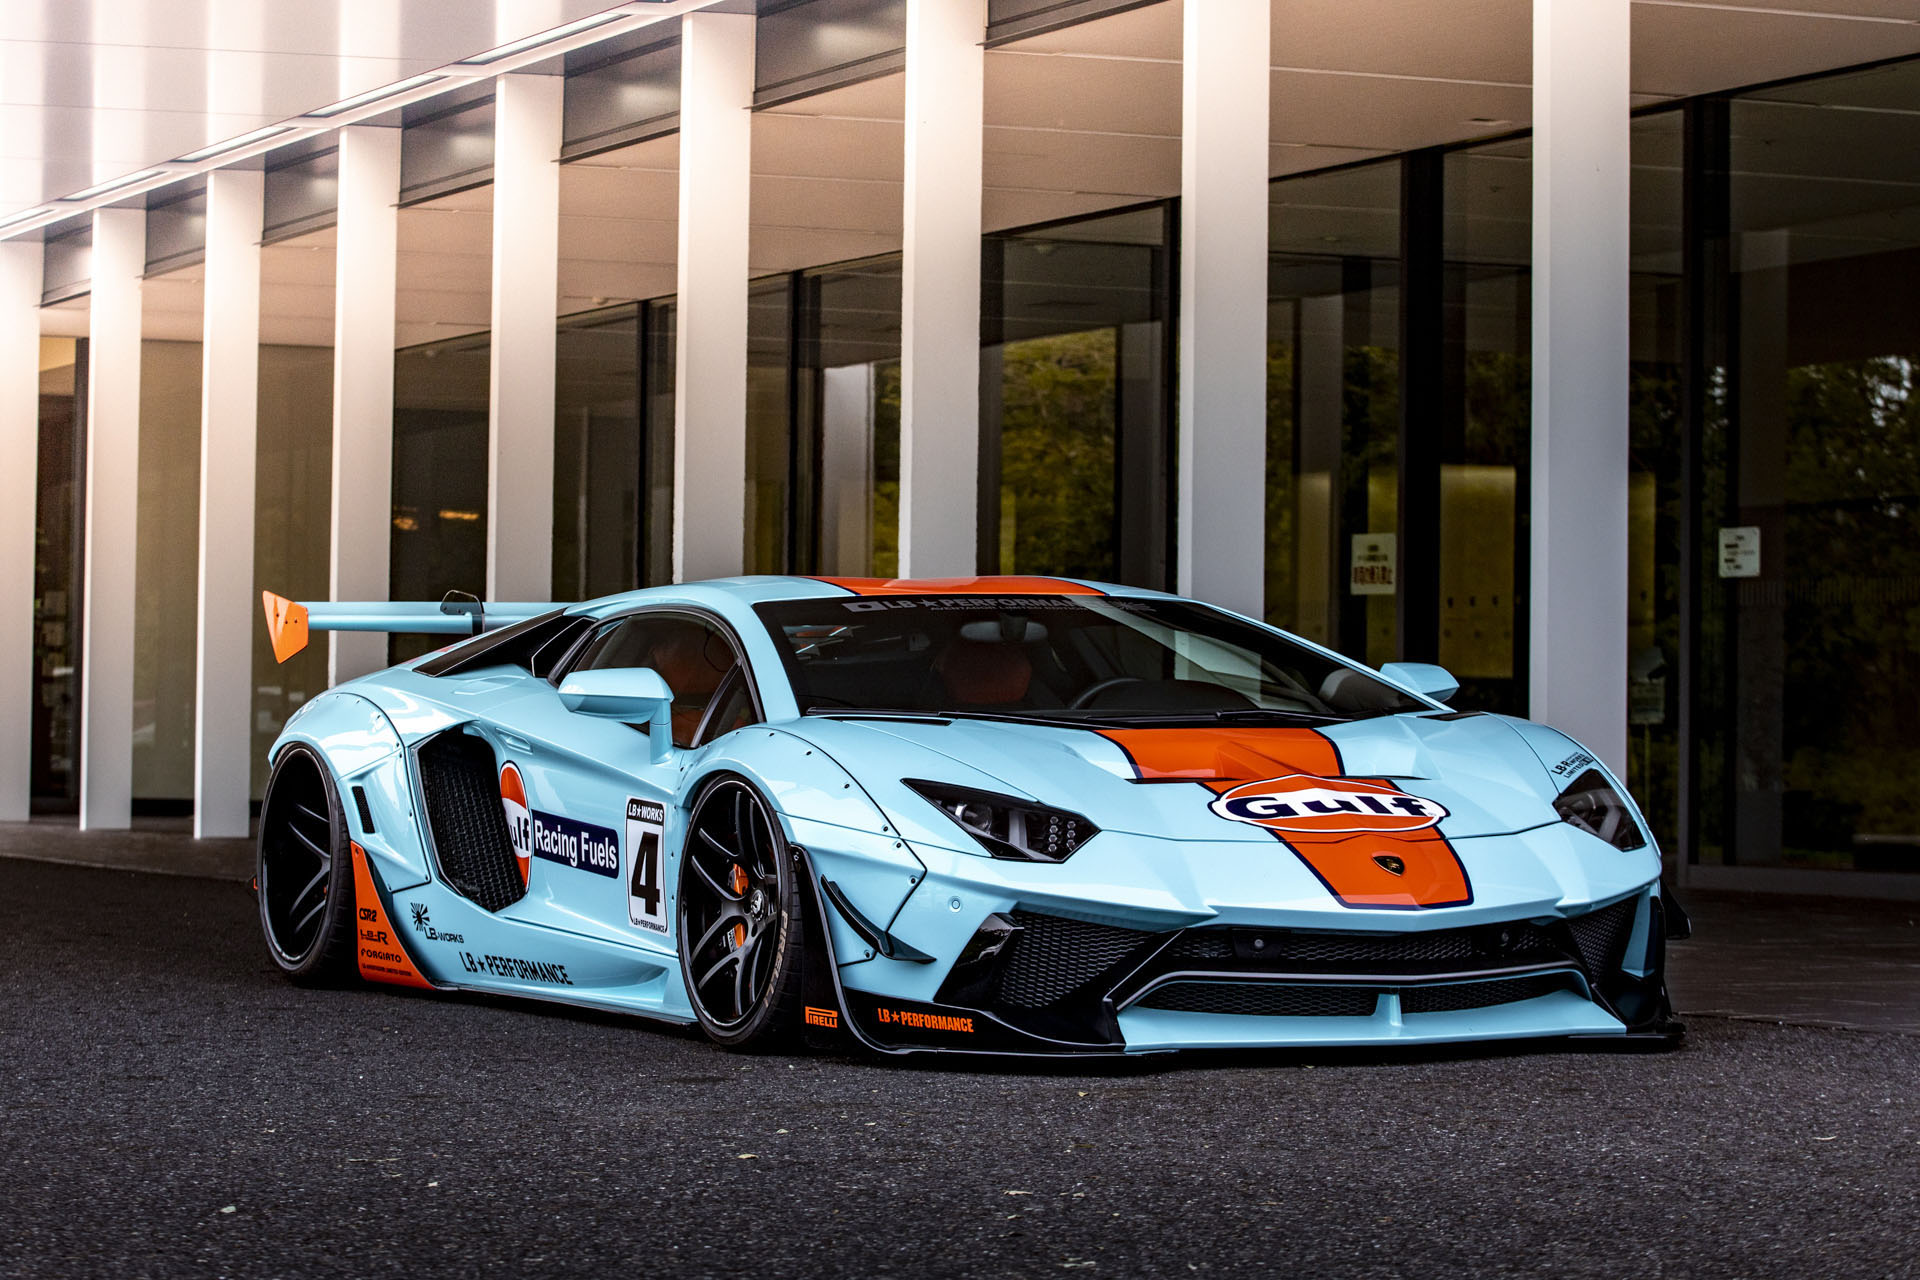 Lamborghini Aventador with Gulf Livery by Liberty Walk (2)